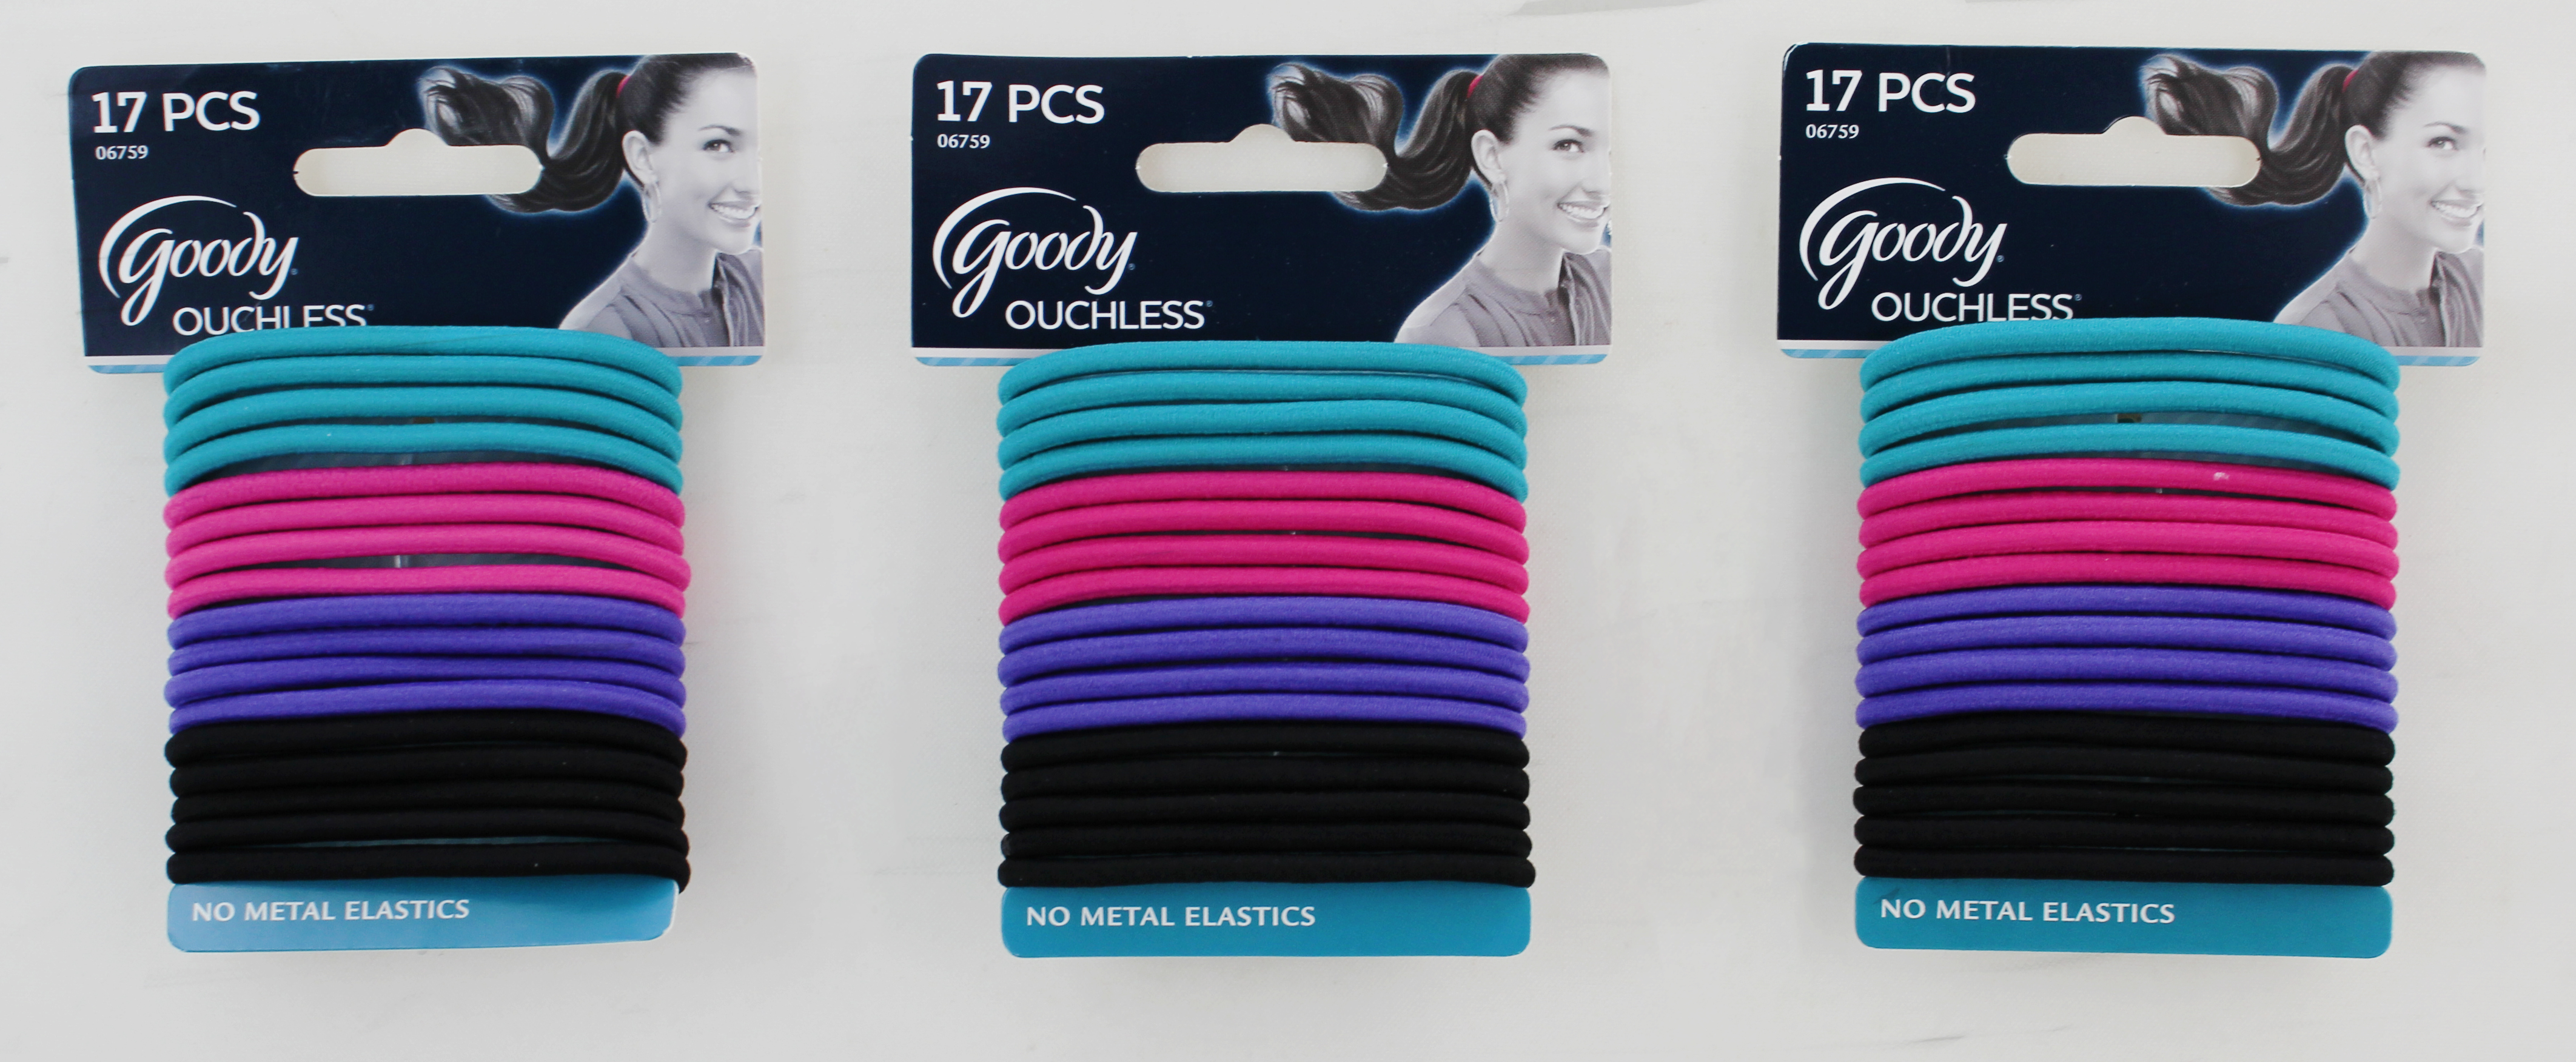 Goody Ouchless No Metal Elastics Purple Shade